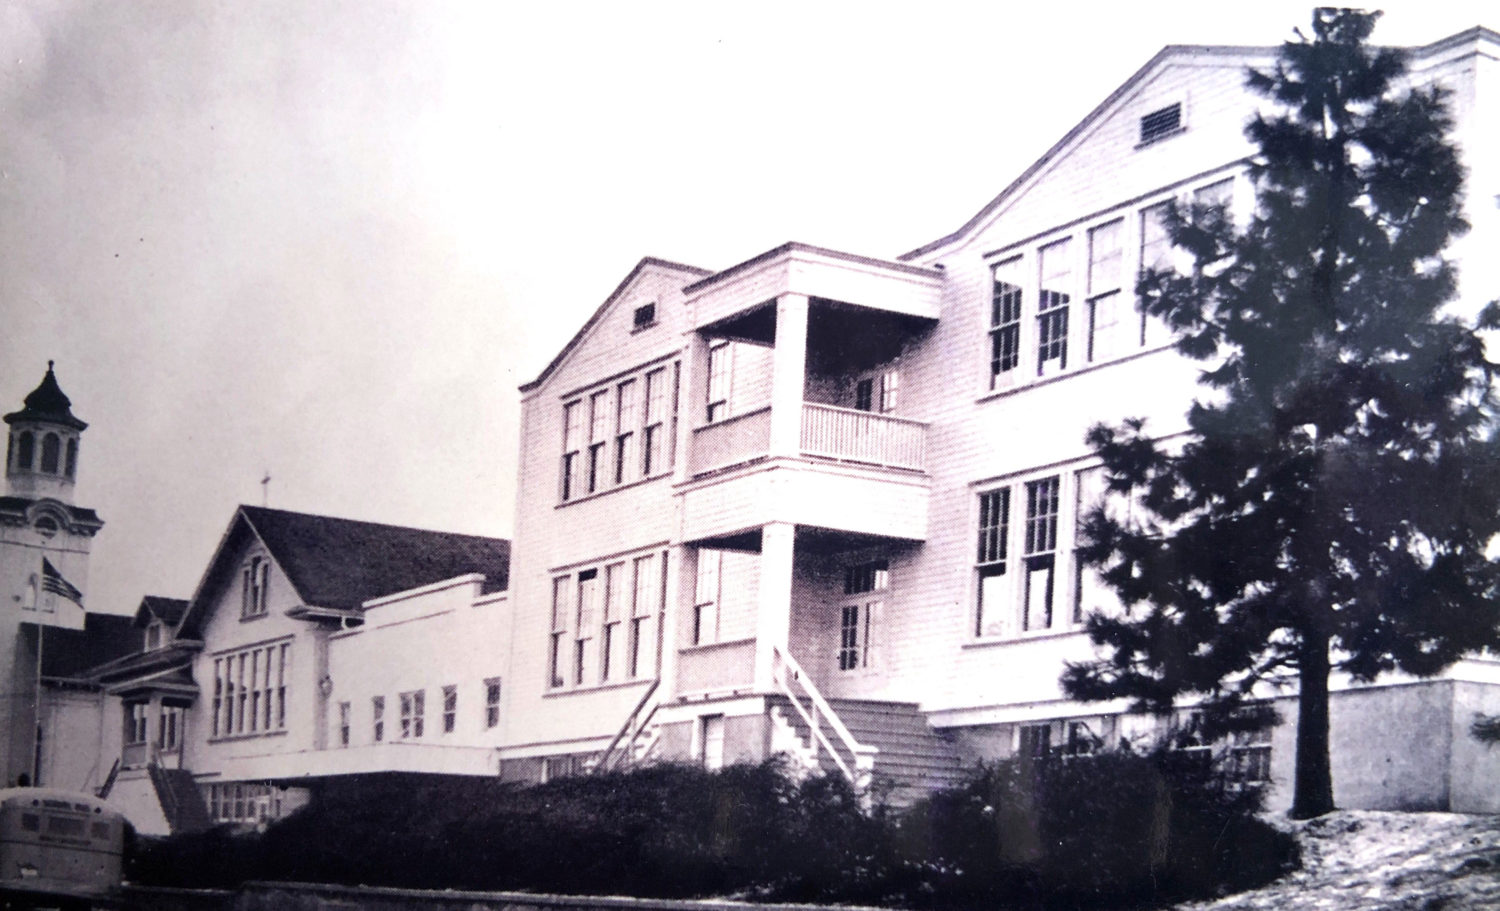 Old Photo of St. John the Baptist Catholic School in Milwaukie, Oregon | Private School in SE Portland